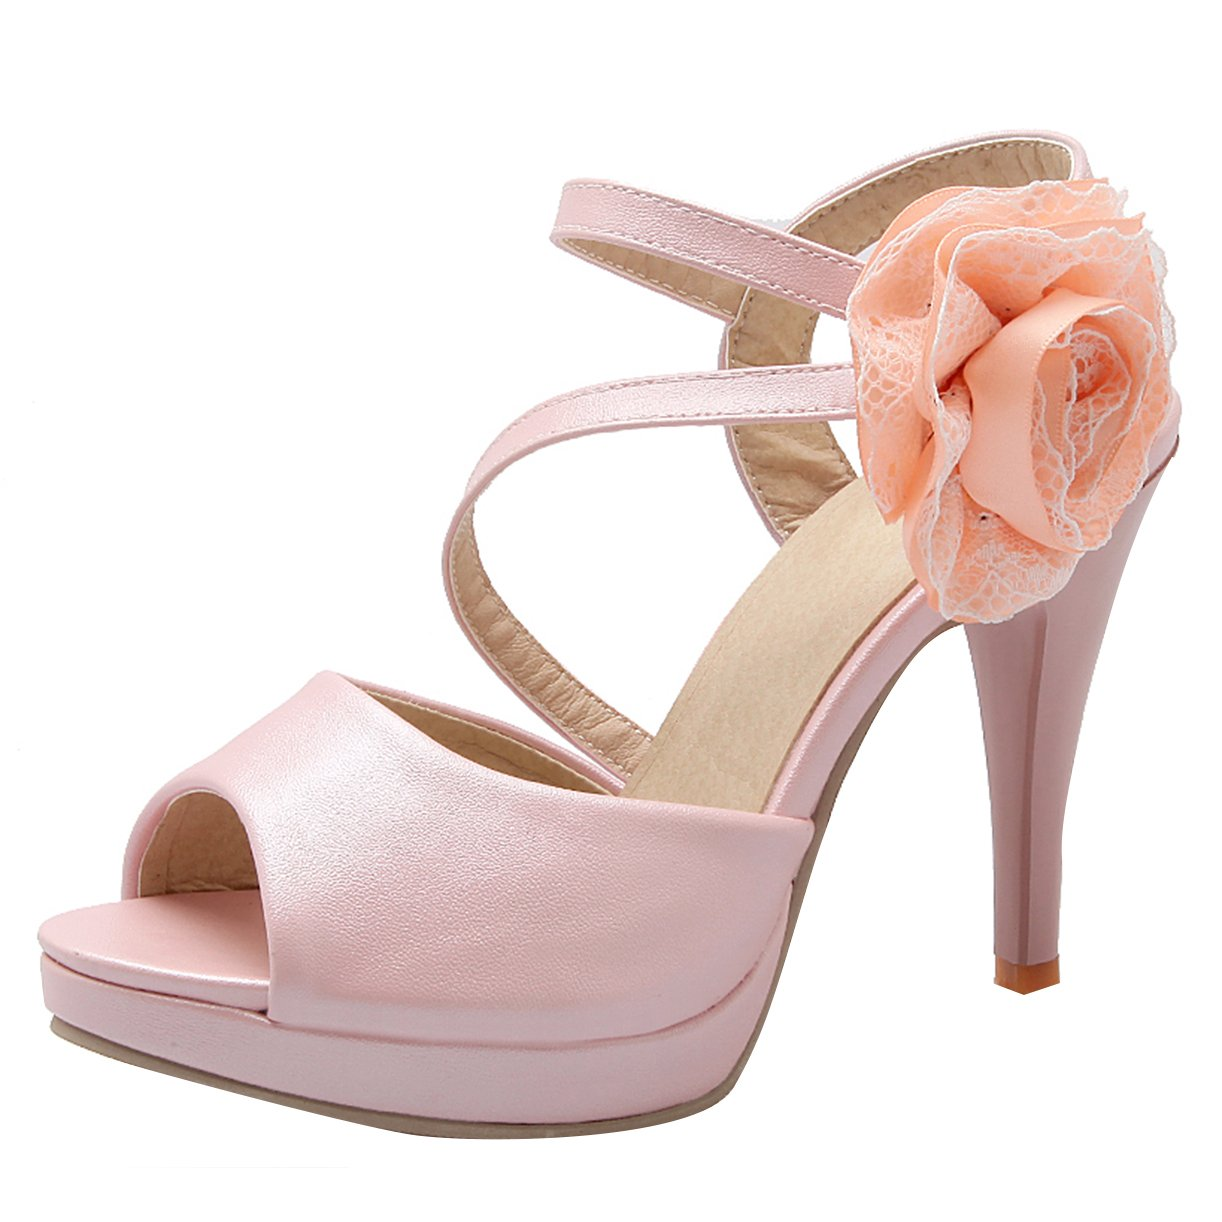 JYshoes B00IJNL1GC Rose , Plateforme Femme Femme Rose ca127a2 - conorscully.space